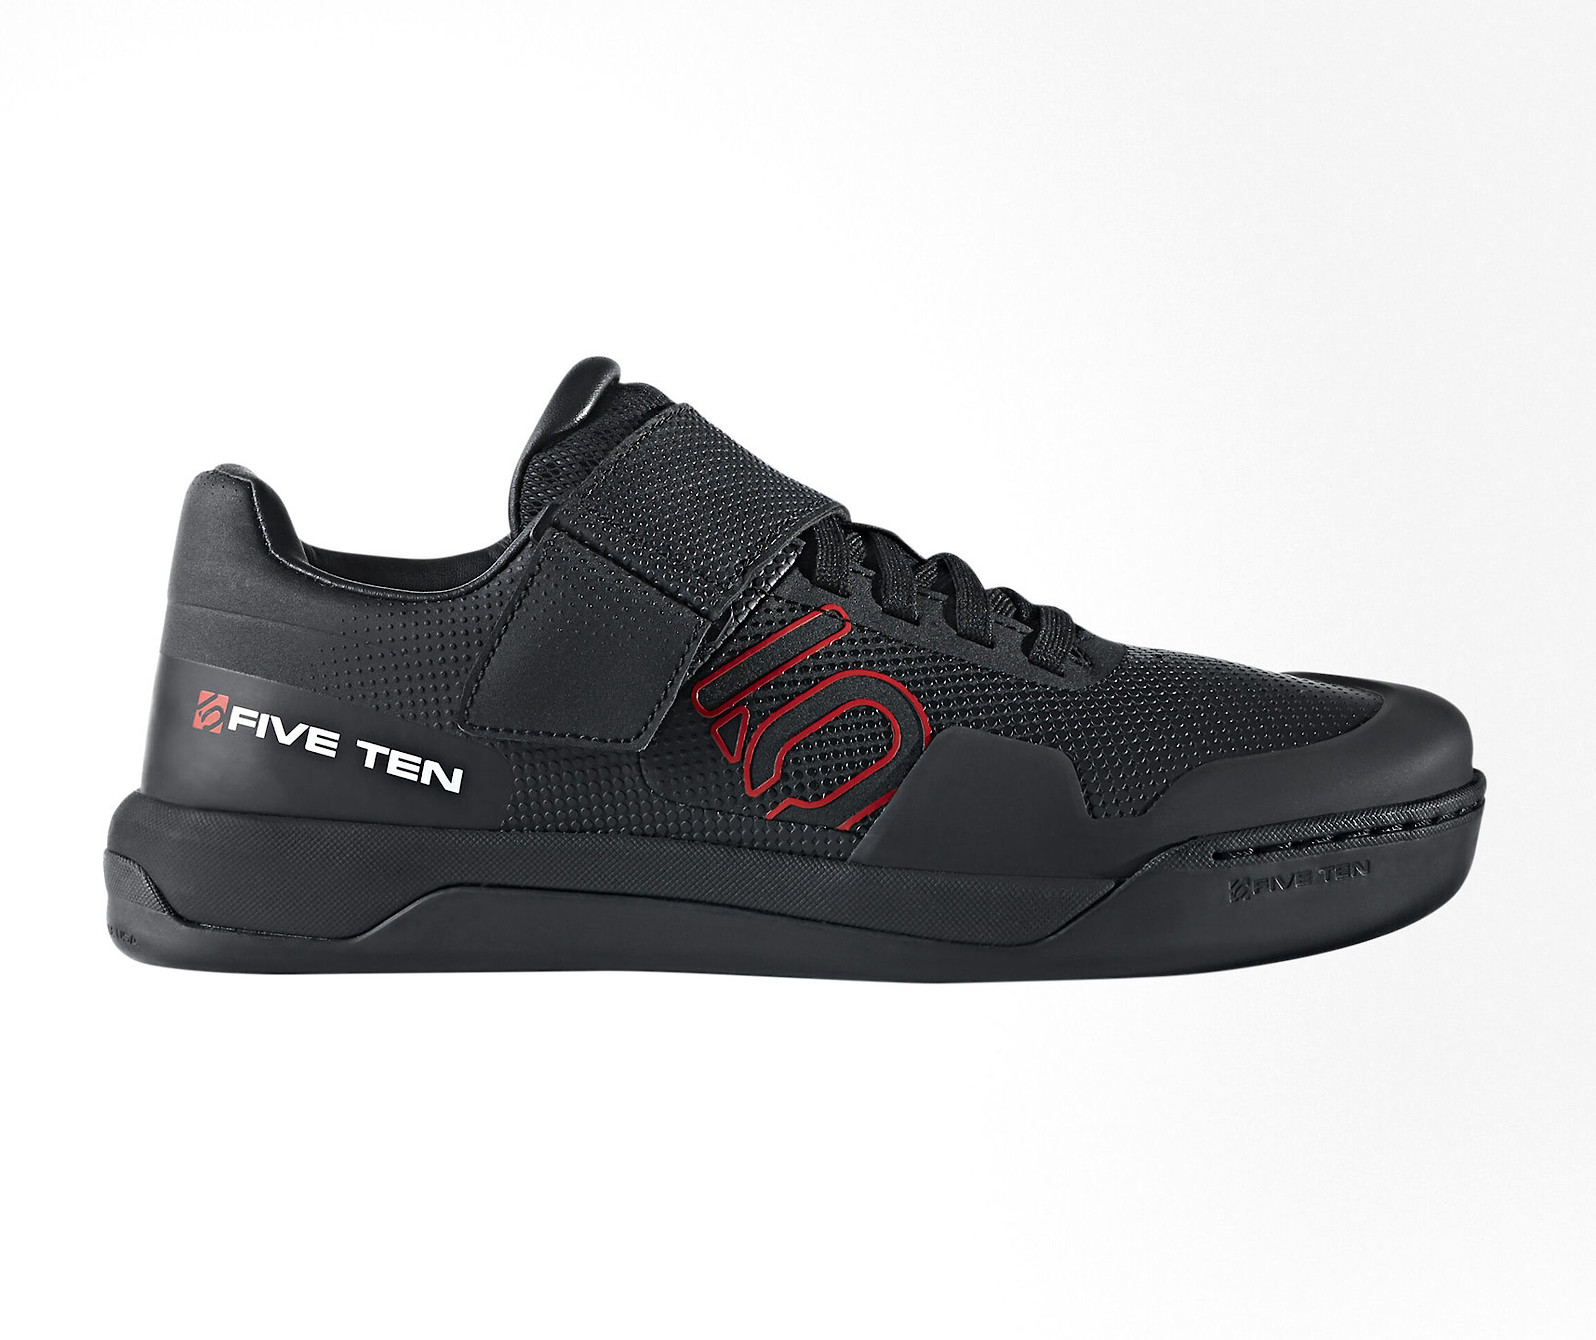 2019 Five Ten Hellcat Pro Clipless Shoe